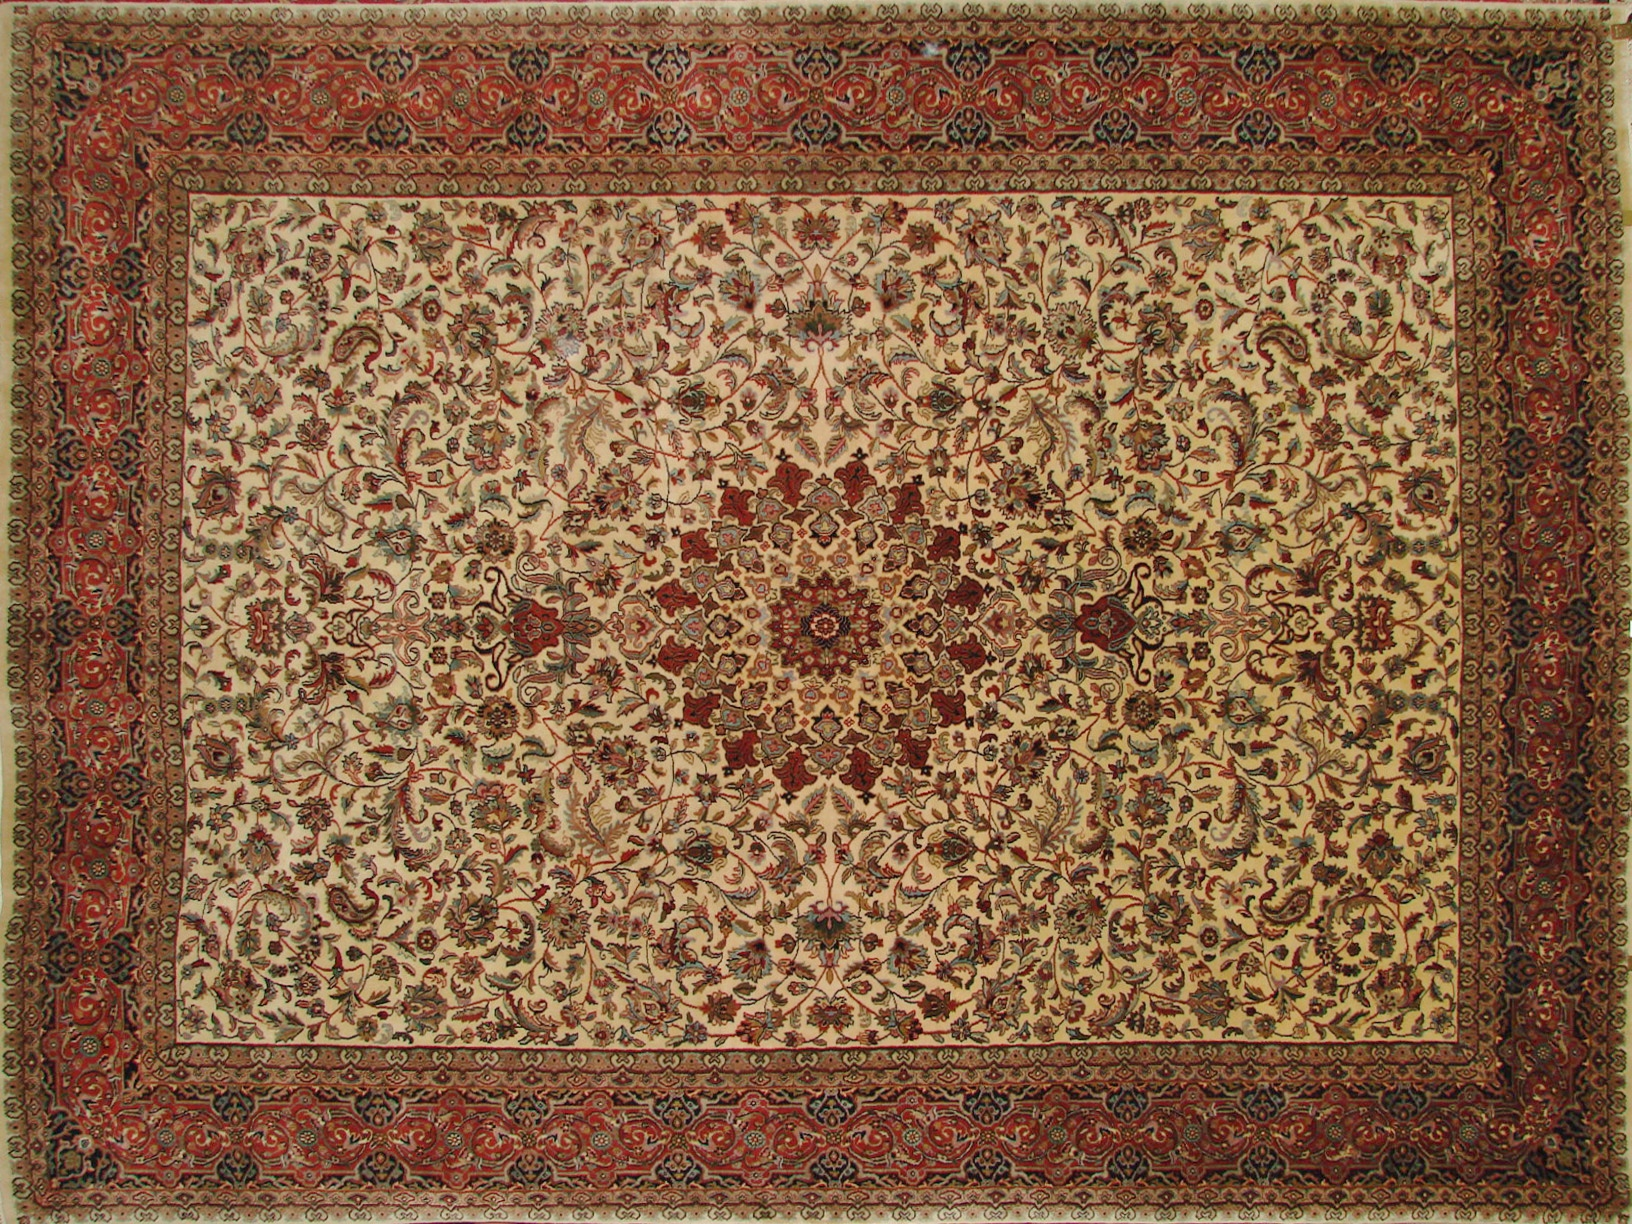 8x10 Traditional Hand Knotted Wool Area Rug - MR0985